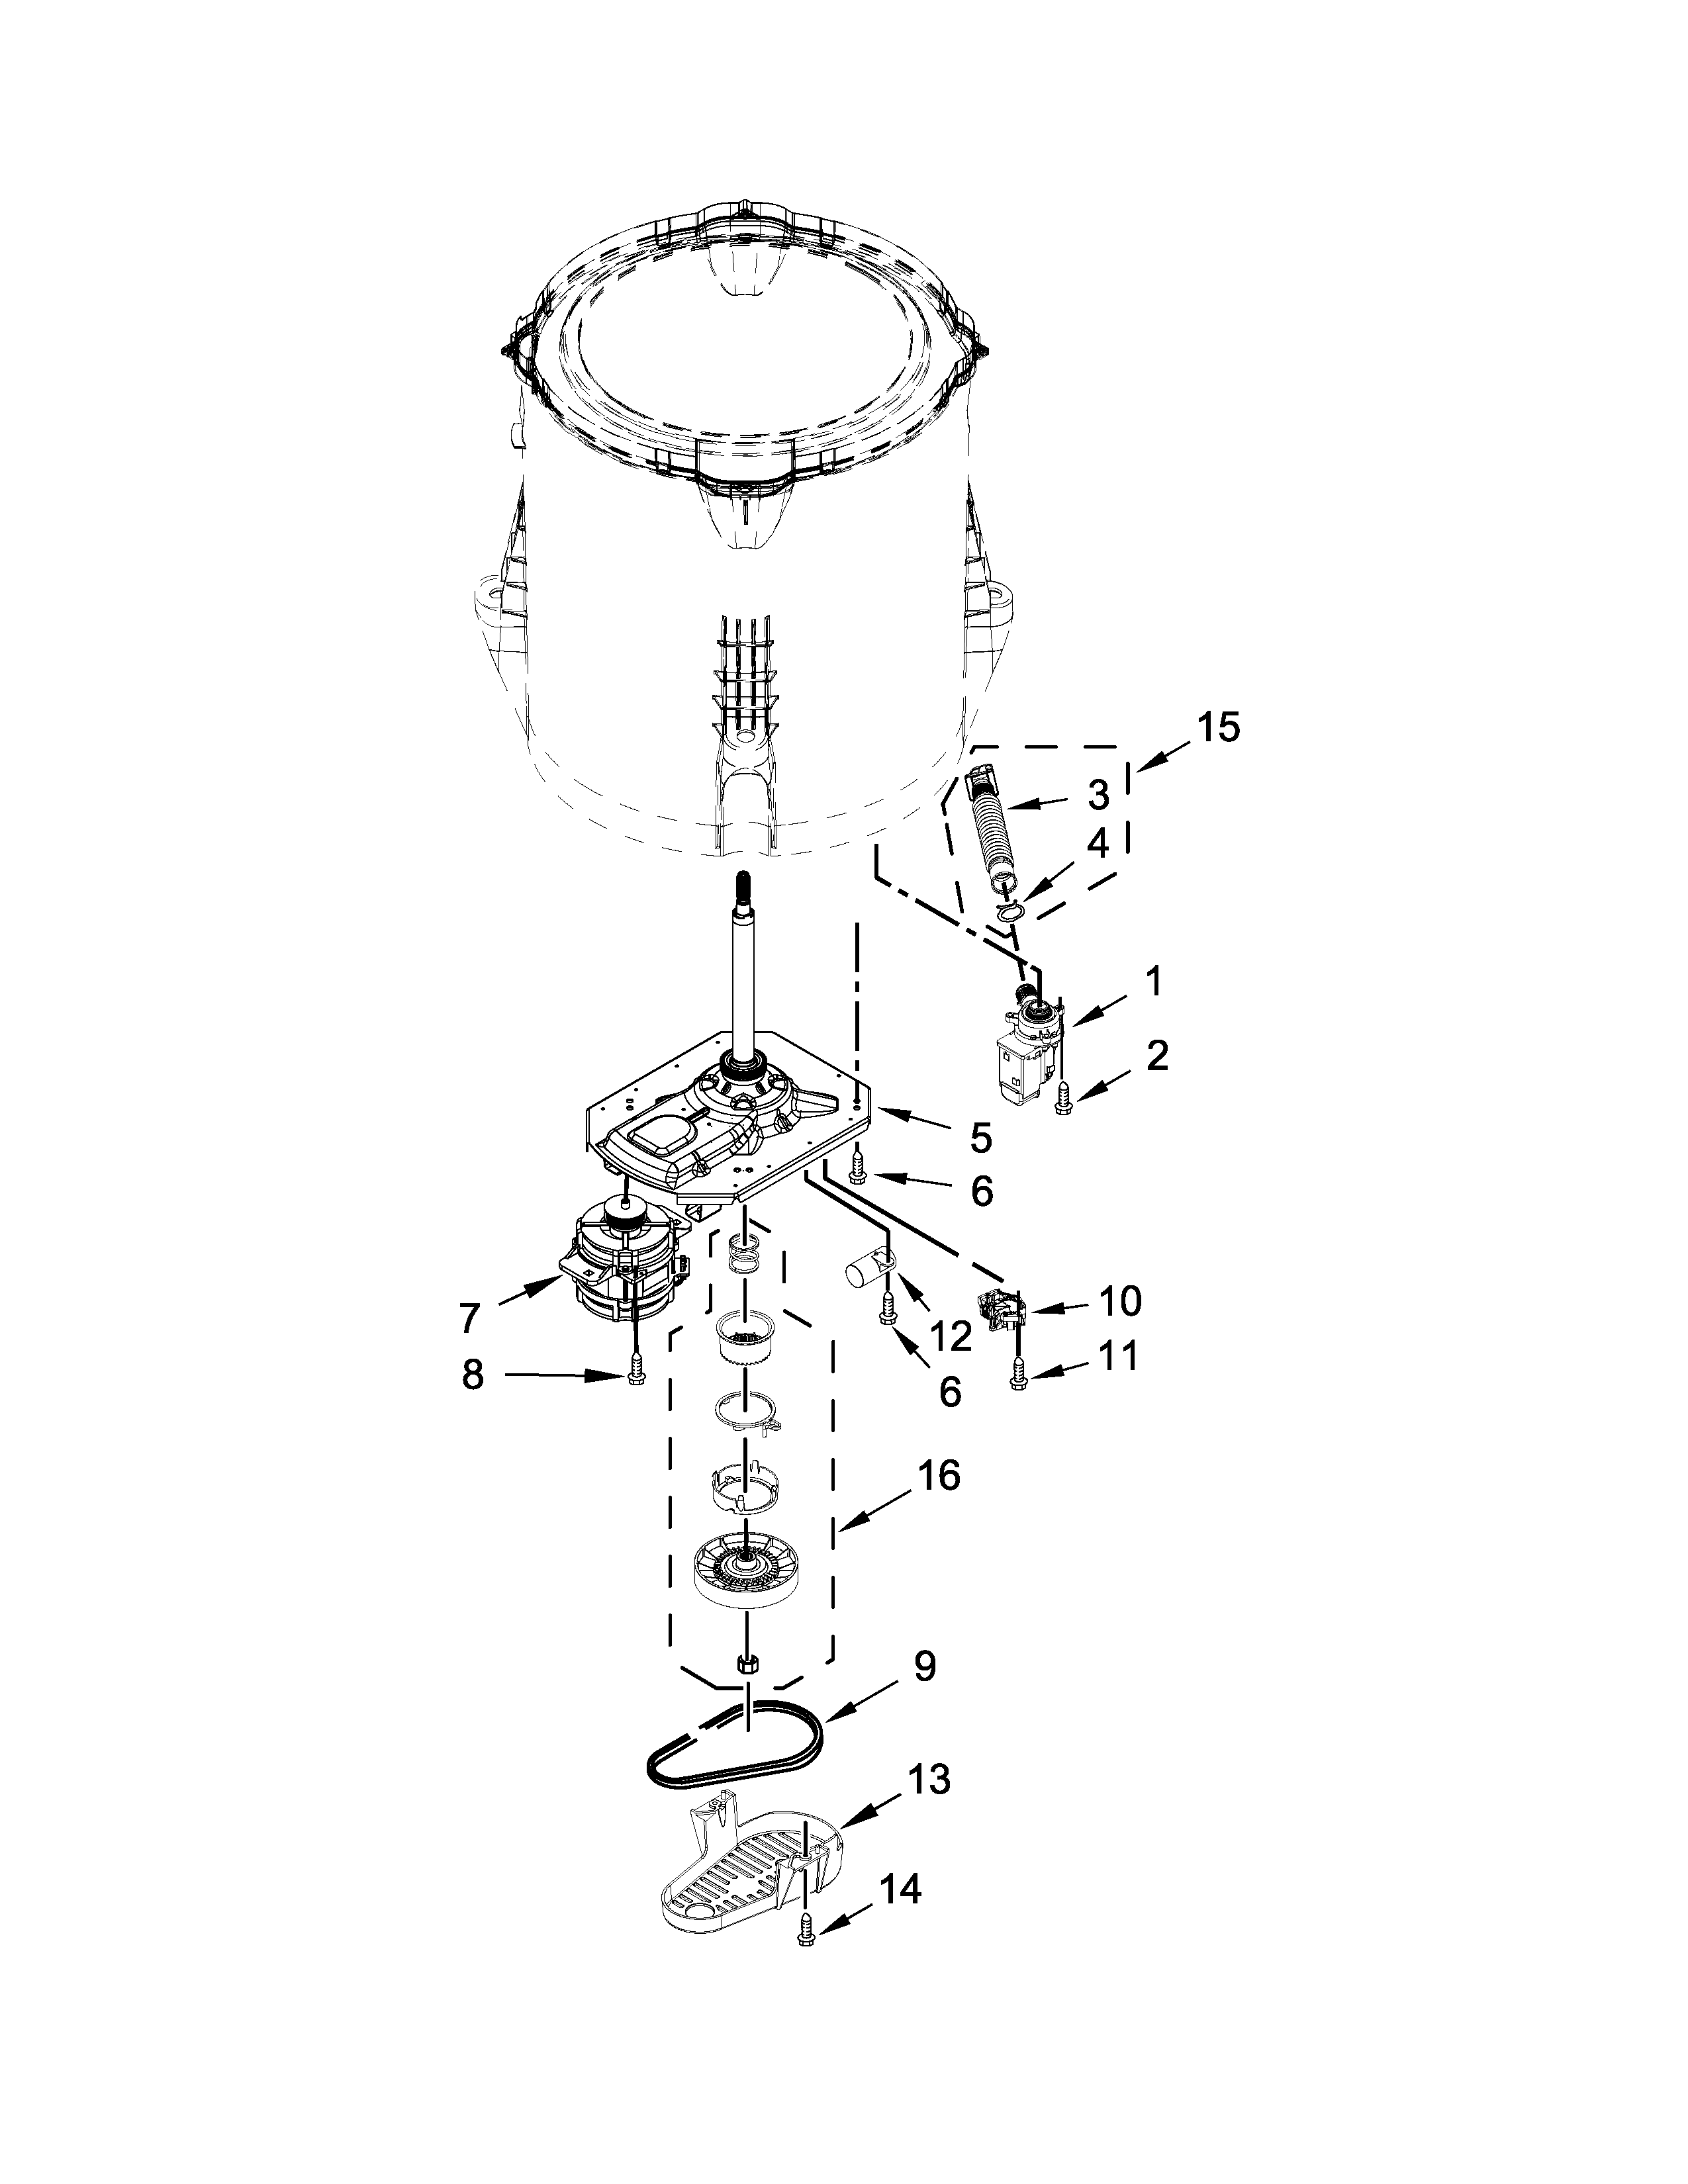 Whirlpool CAE2743BQ0 gearcase, motor and pump parts diagram